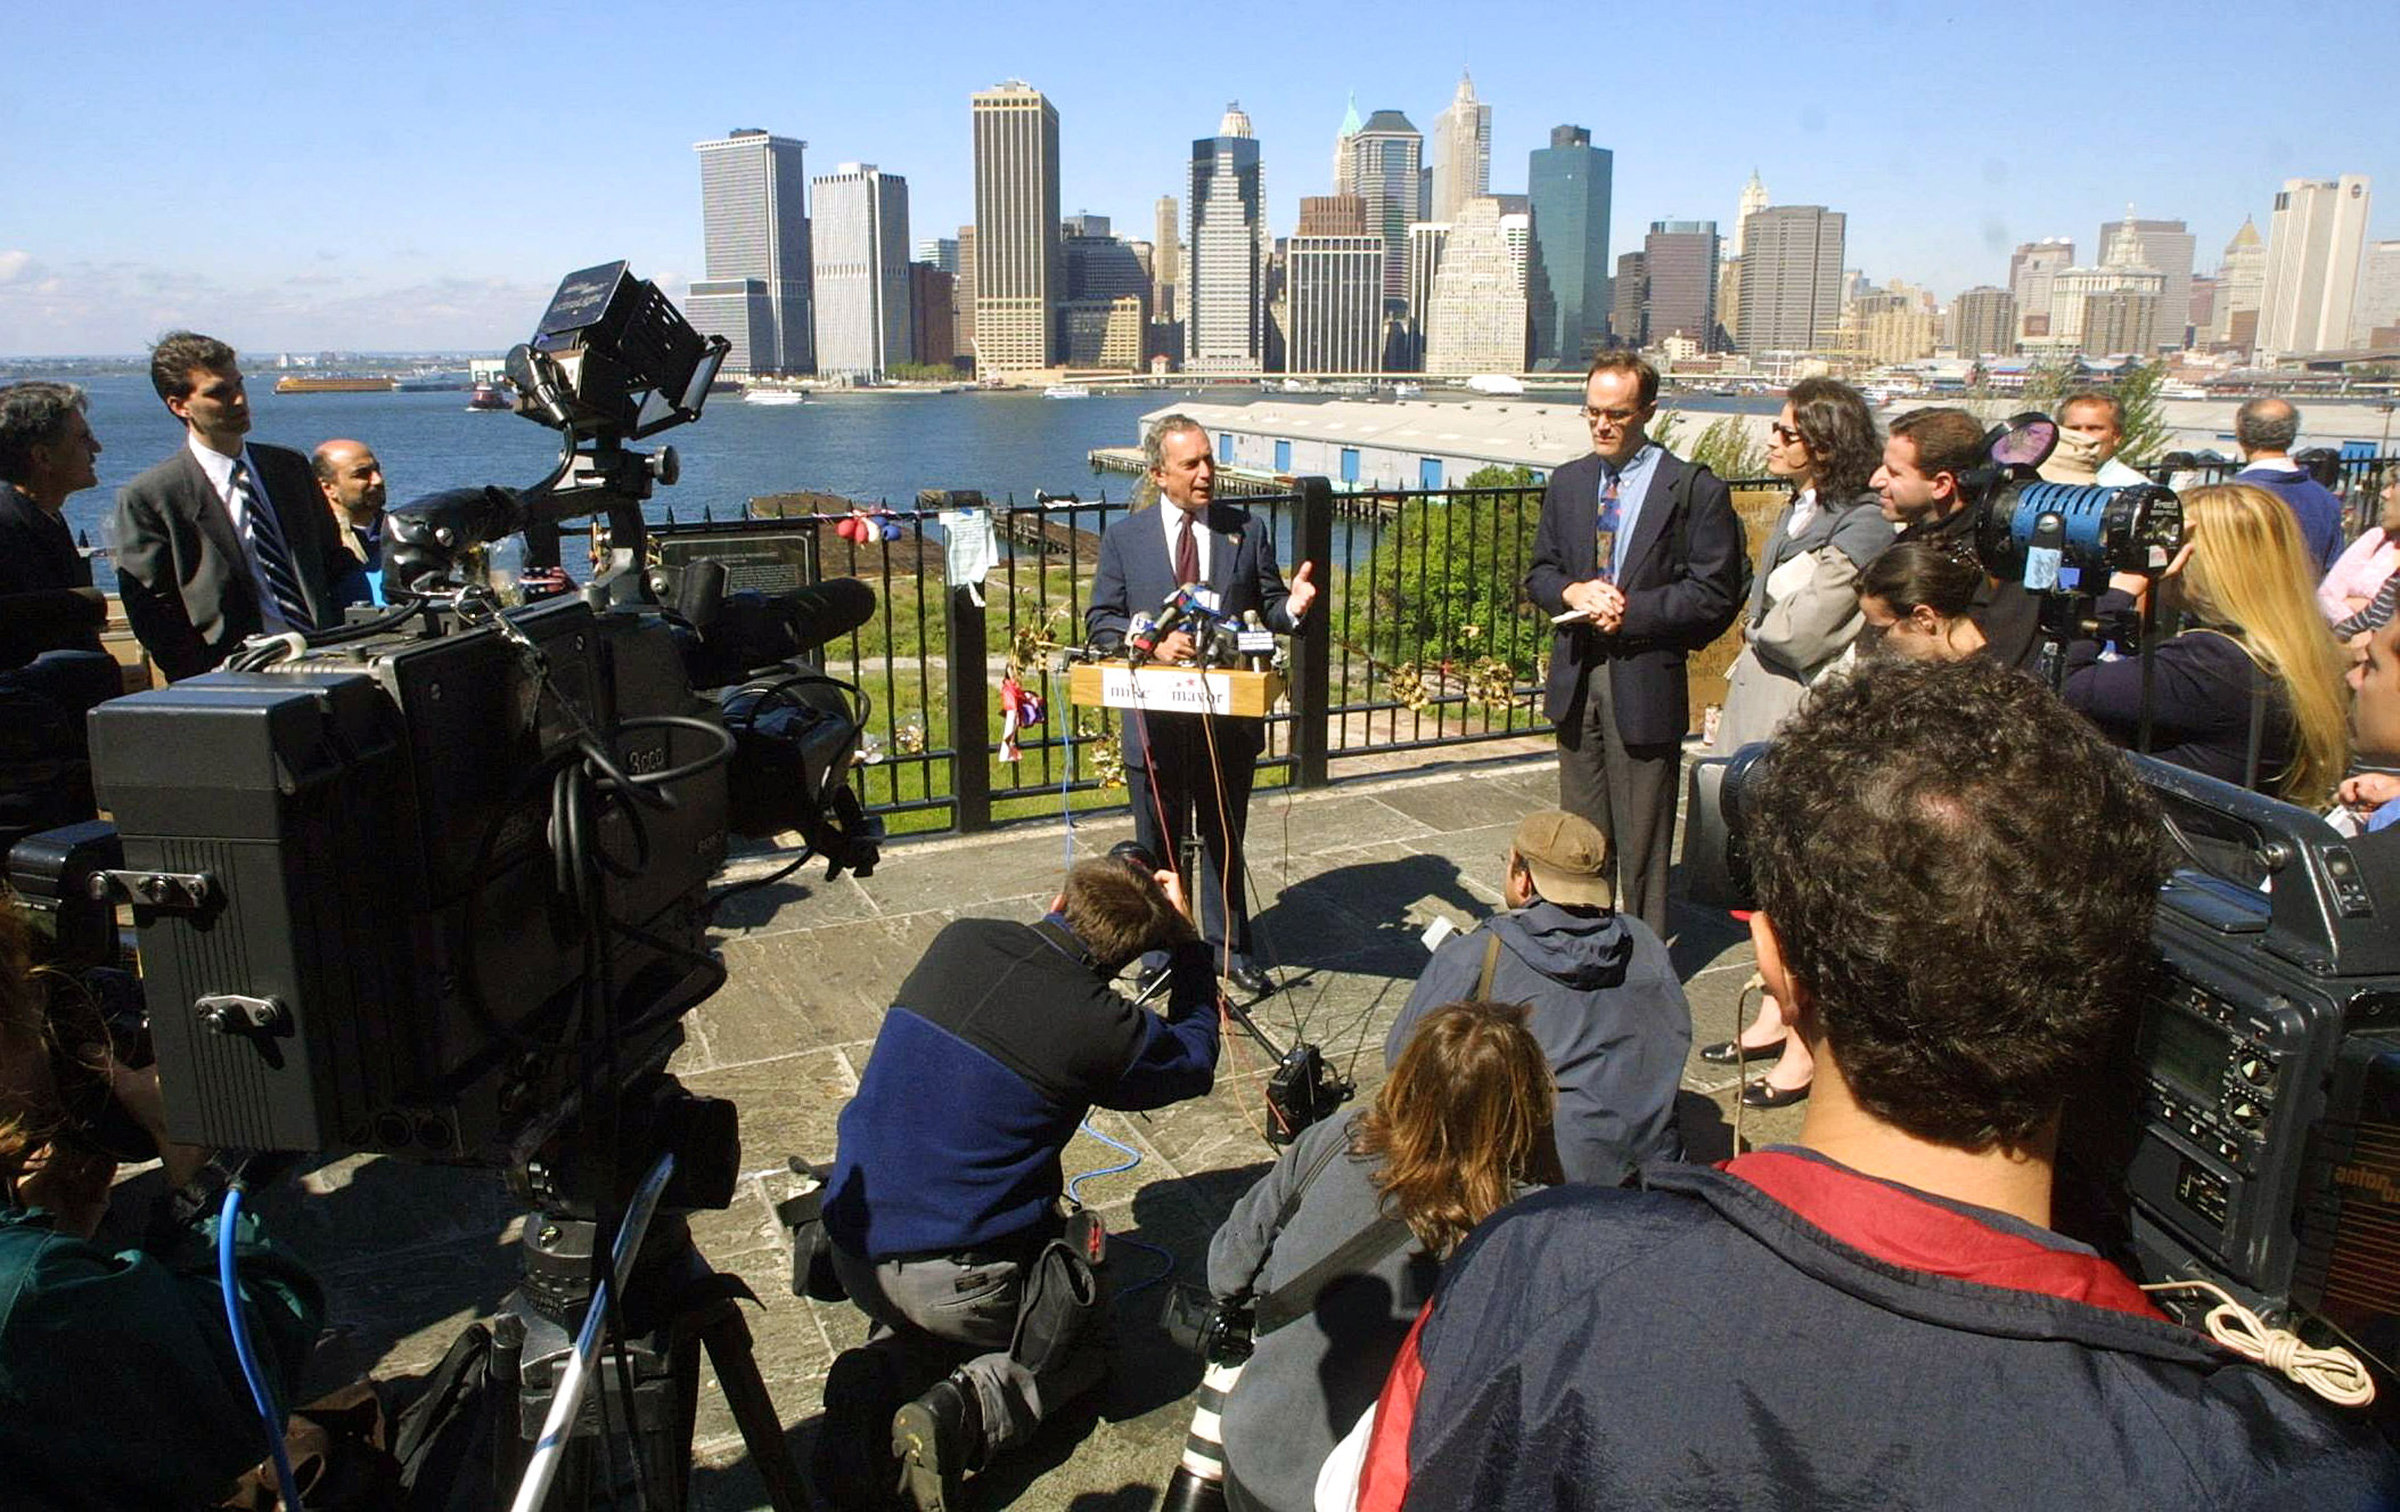 Bloomberg, then a New York City Republican mayoral candidate, speaks to the media in Brooklyn on Sept. 26, 2001, after winning the Republican primary.